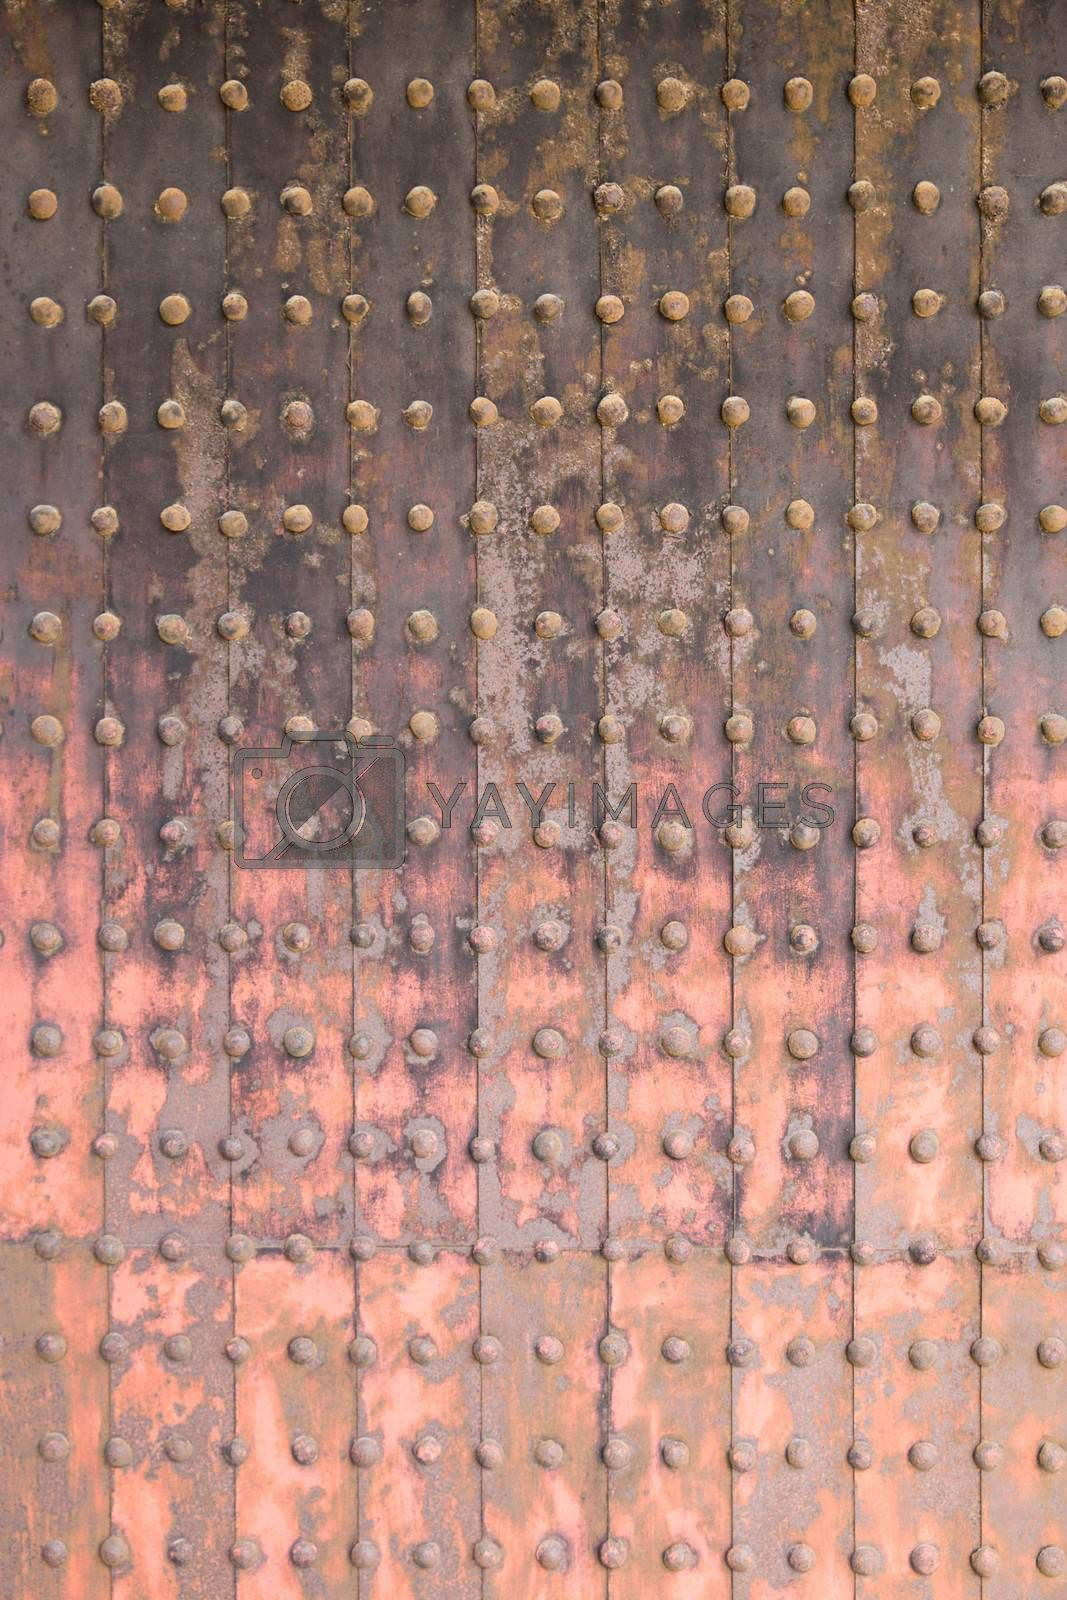 Old grunge metal wall in an old temple